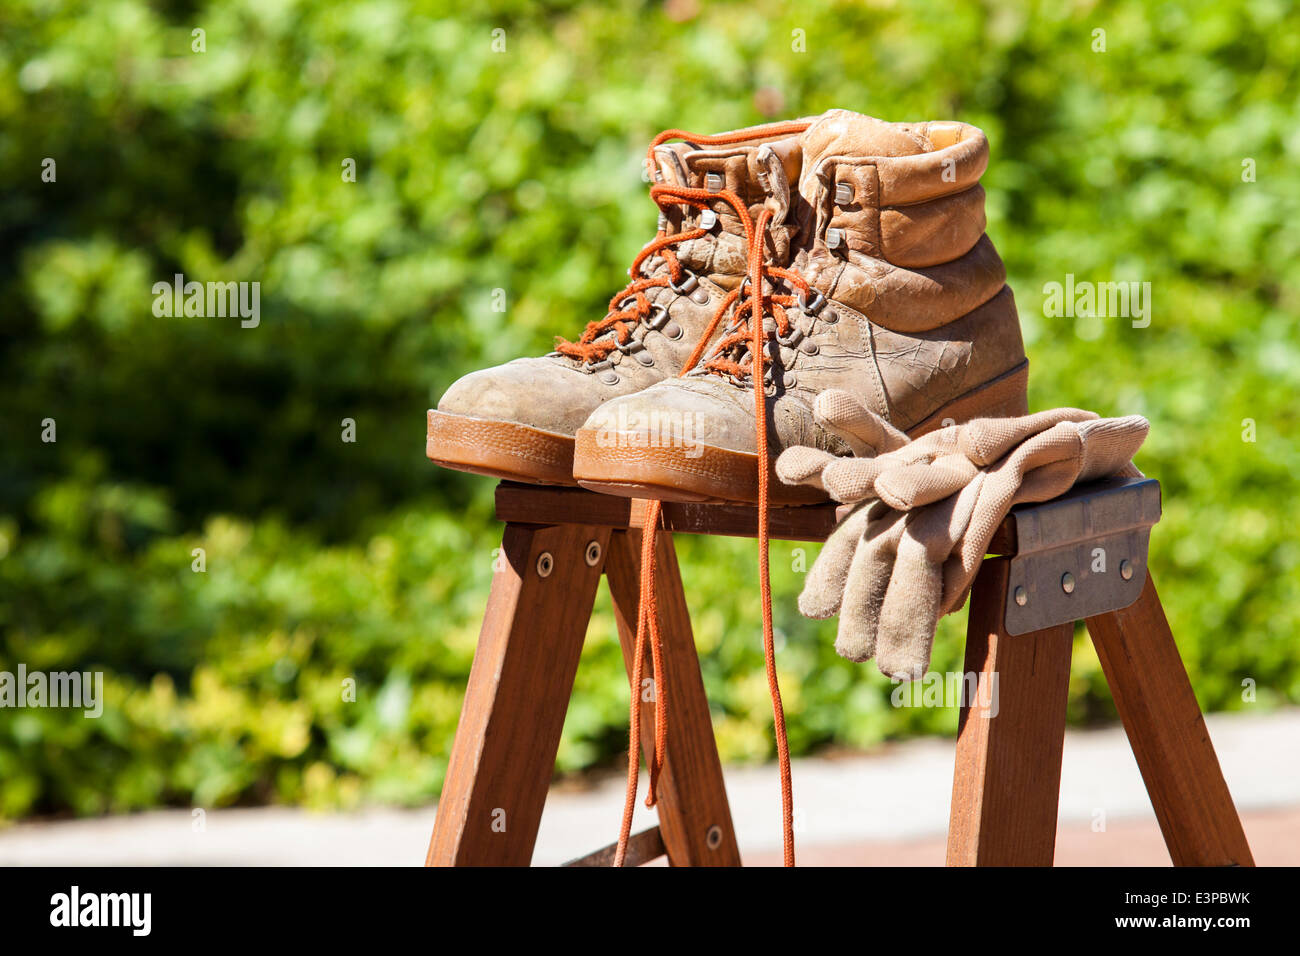 Work boots and gloves on a step ladder - Stock Image